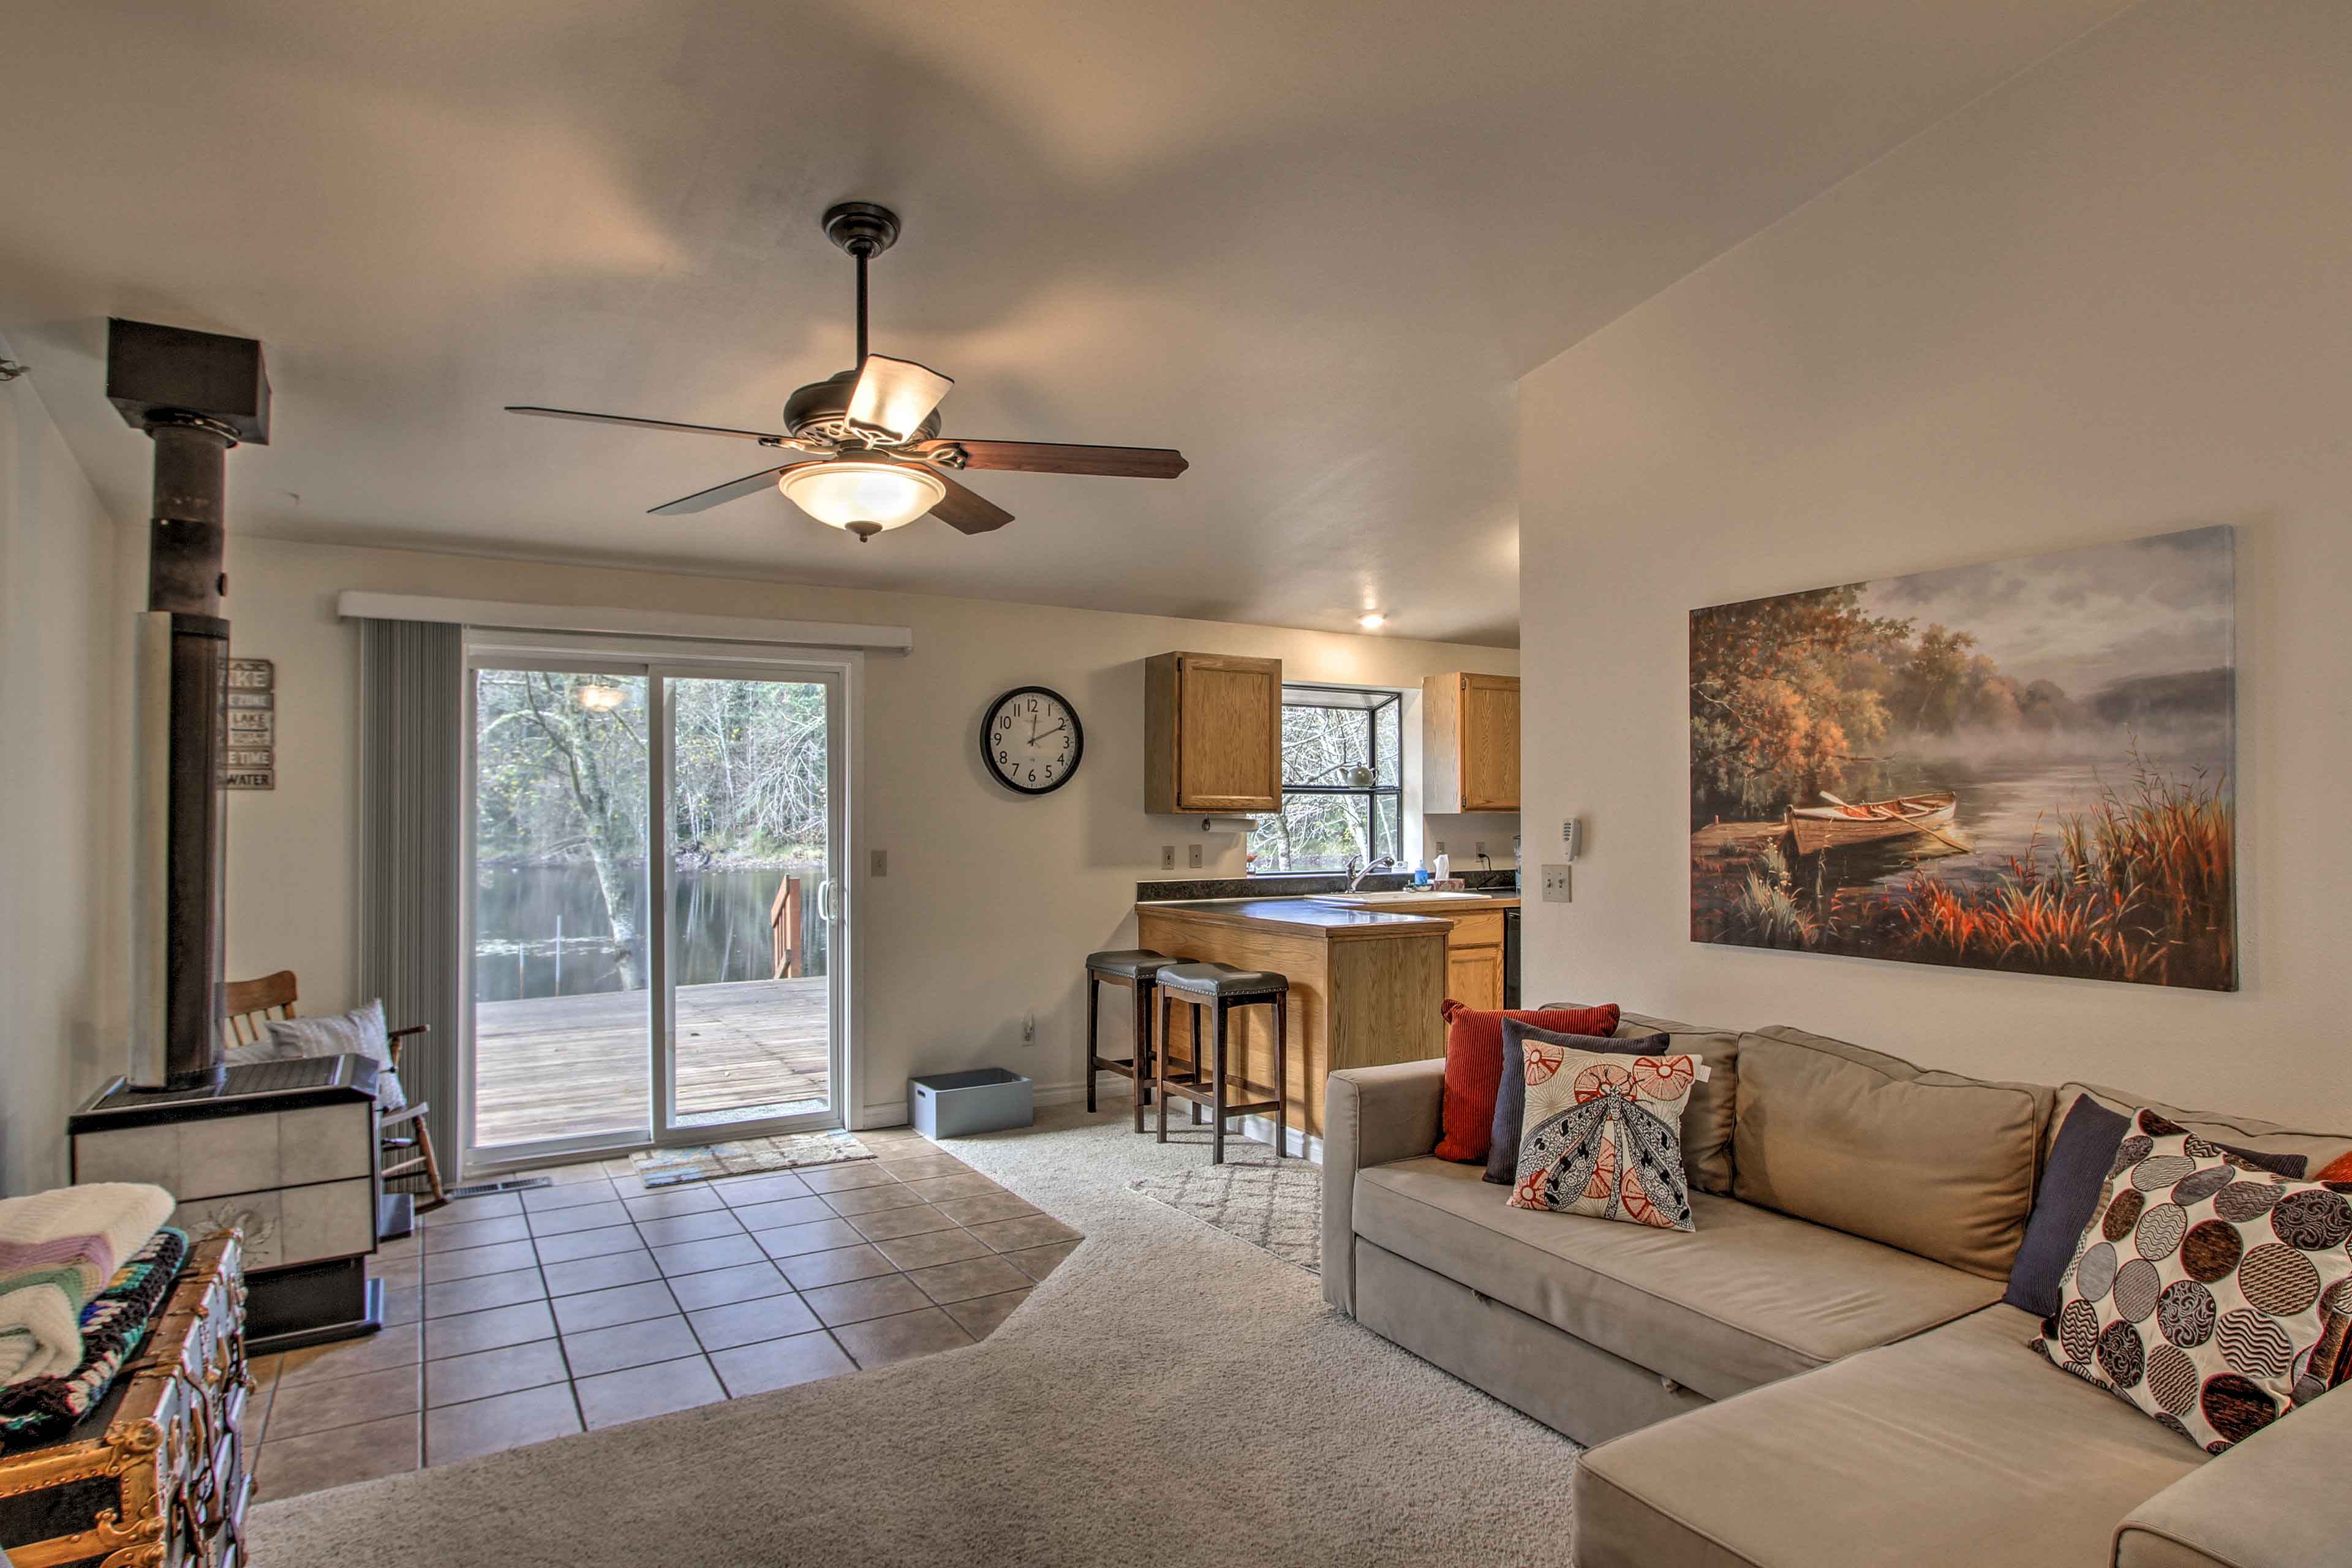 With multiple living spaces, this home can easily accommodate a family.